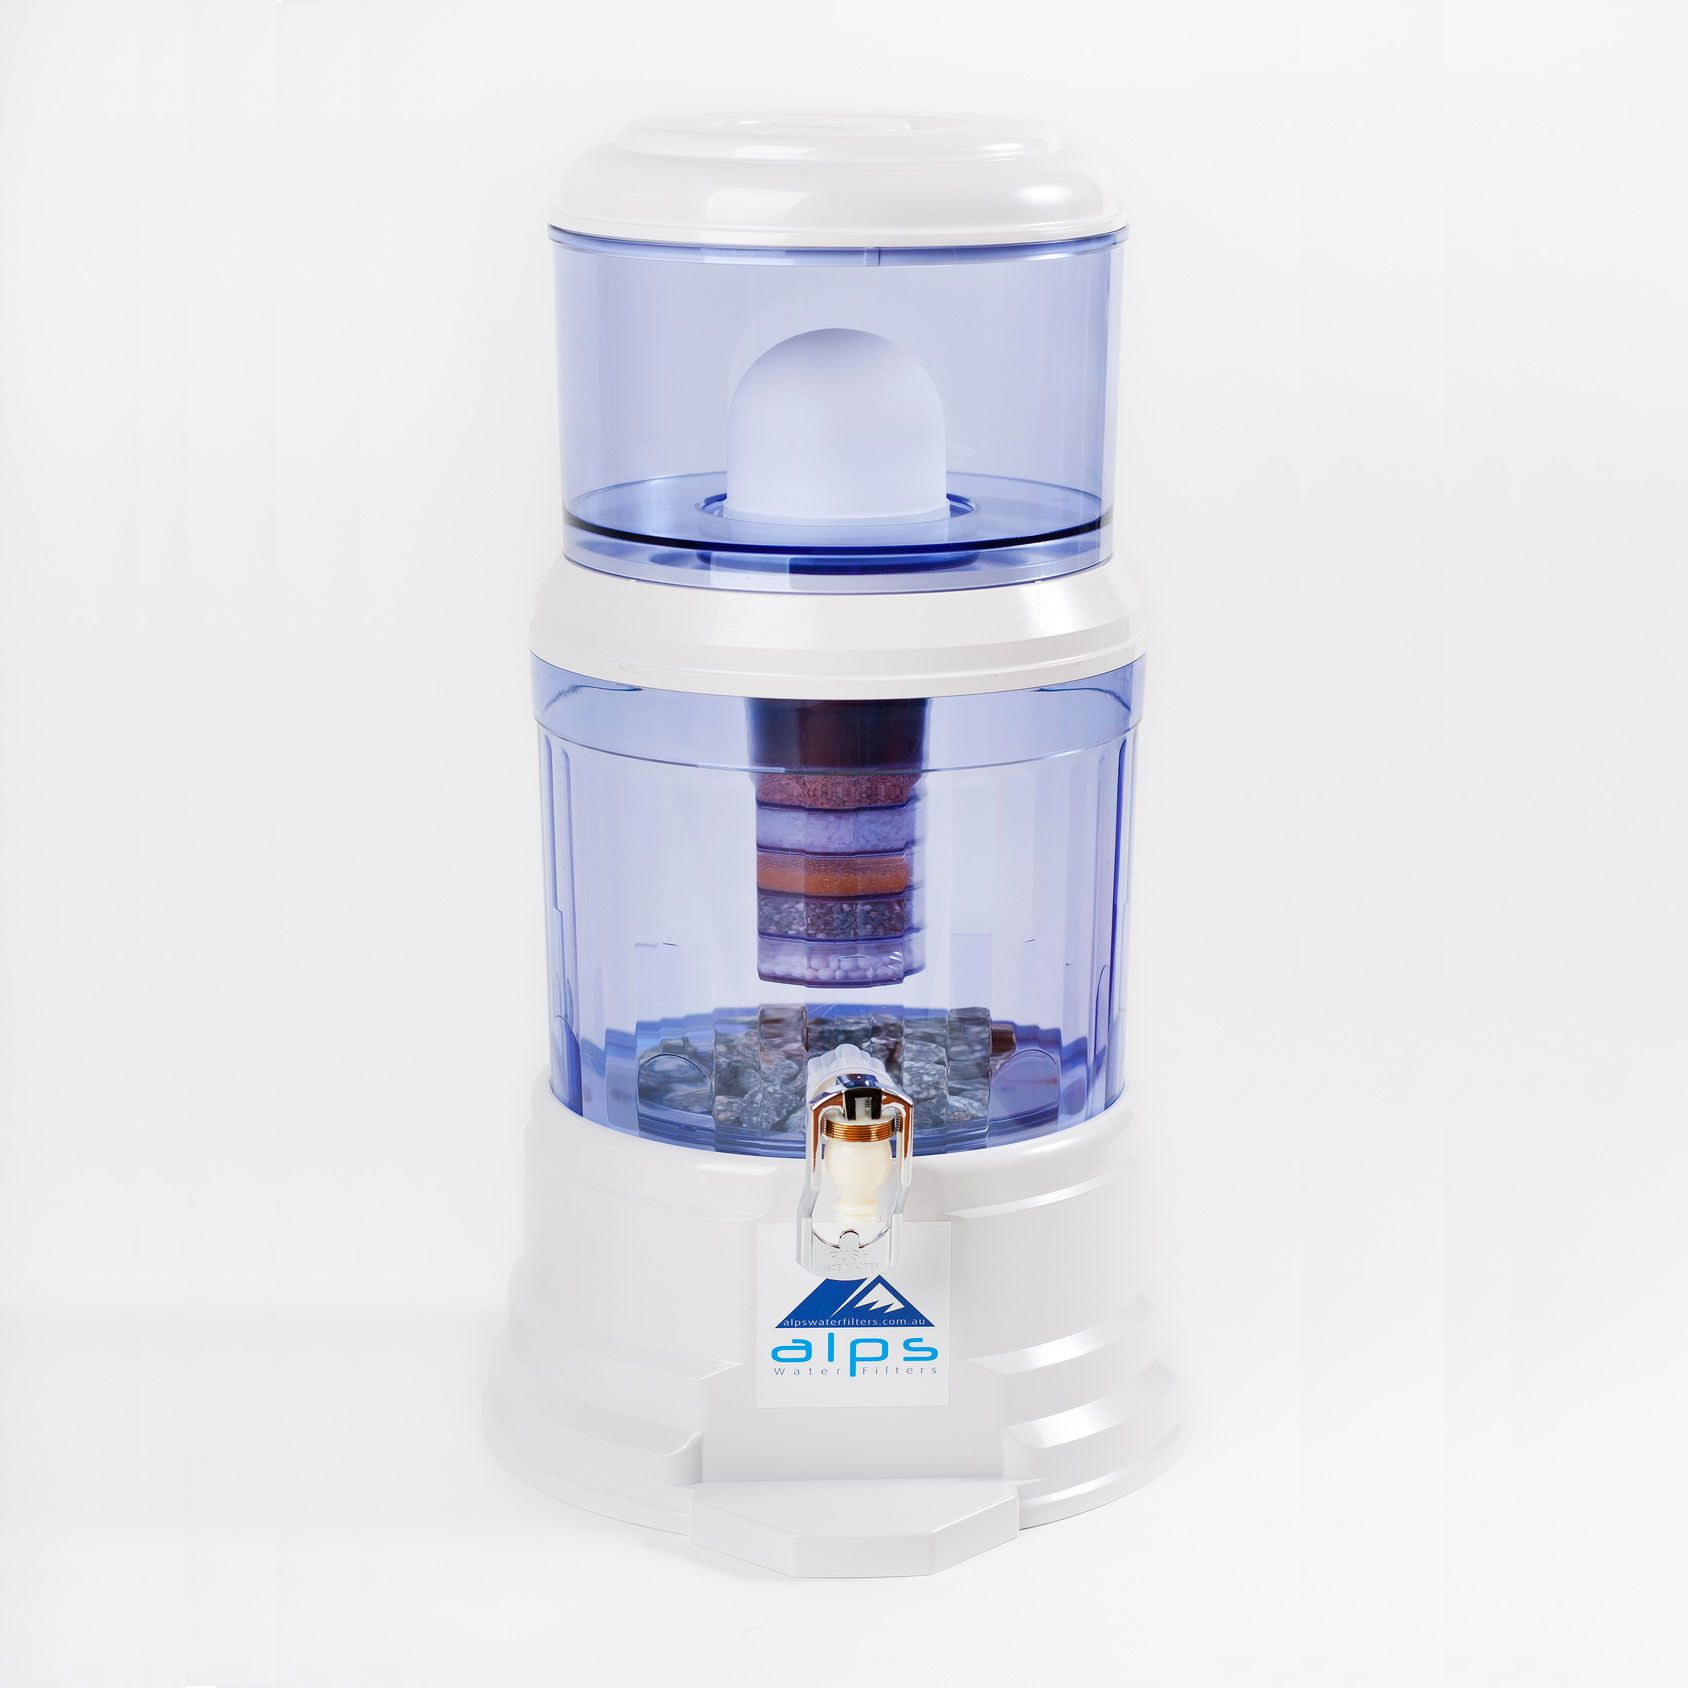 Bottled Water Delivery In New York New York Bottled Water Delivery Water Delivery Water Filter